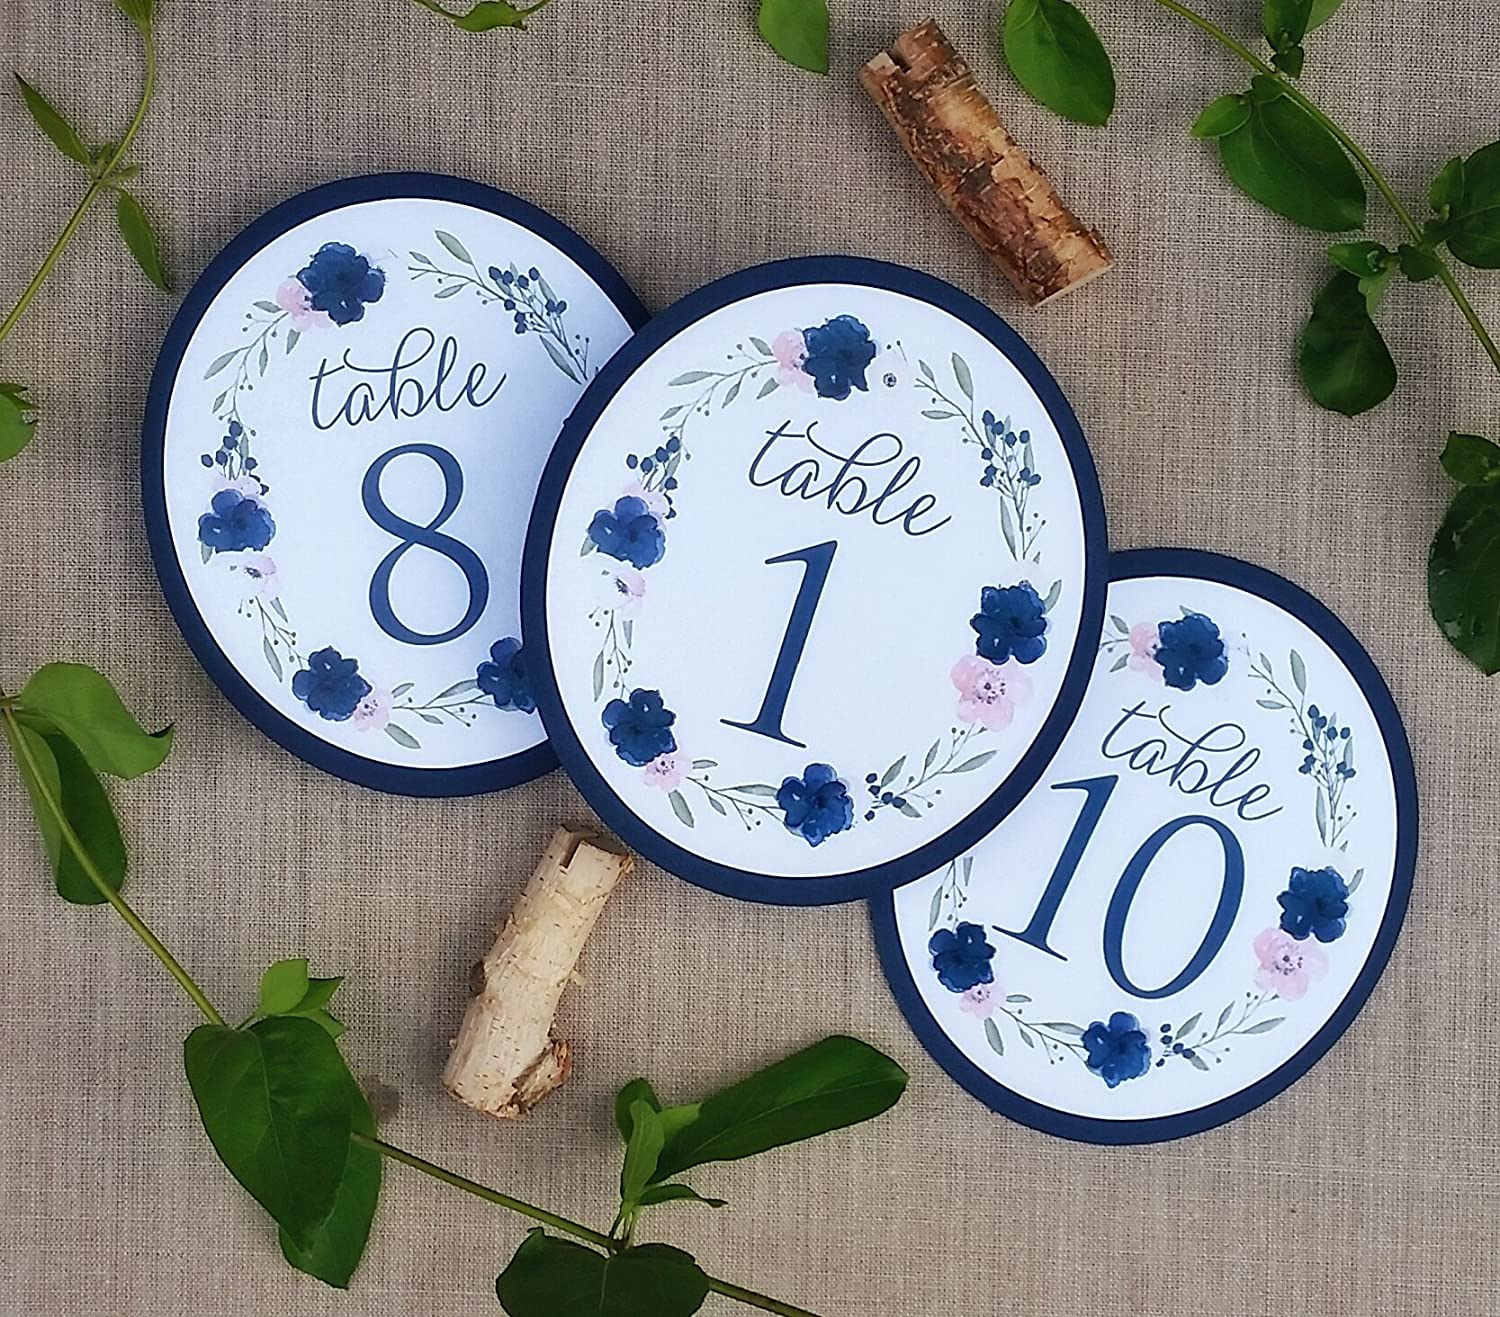 Table numbers, Weddings, Centerpieces, wedding table, table numbers, wedding, rustic wedding, wedding decor wedding numbers, wedding tables. Wedding. wedding decorations, chalkboard